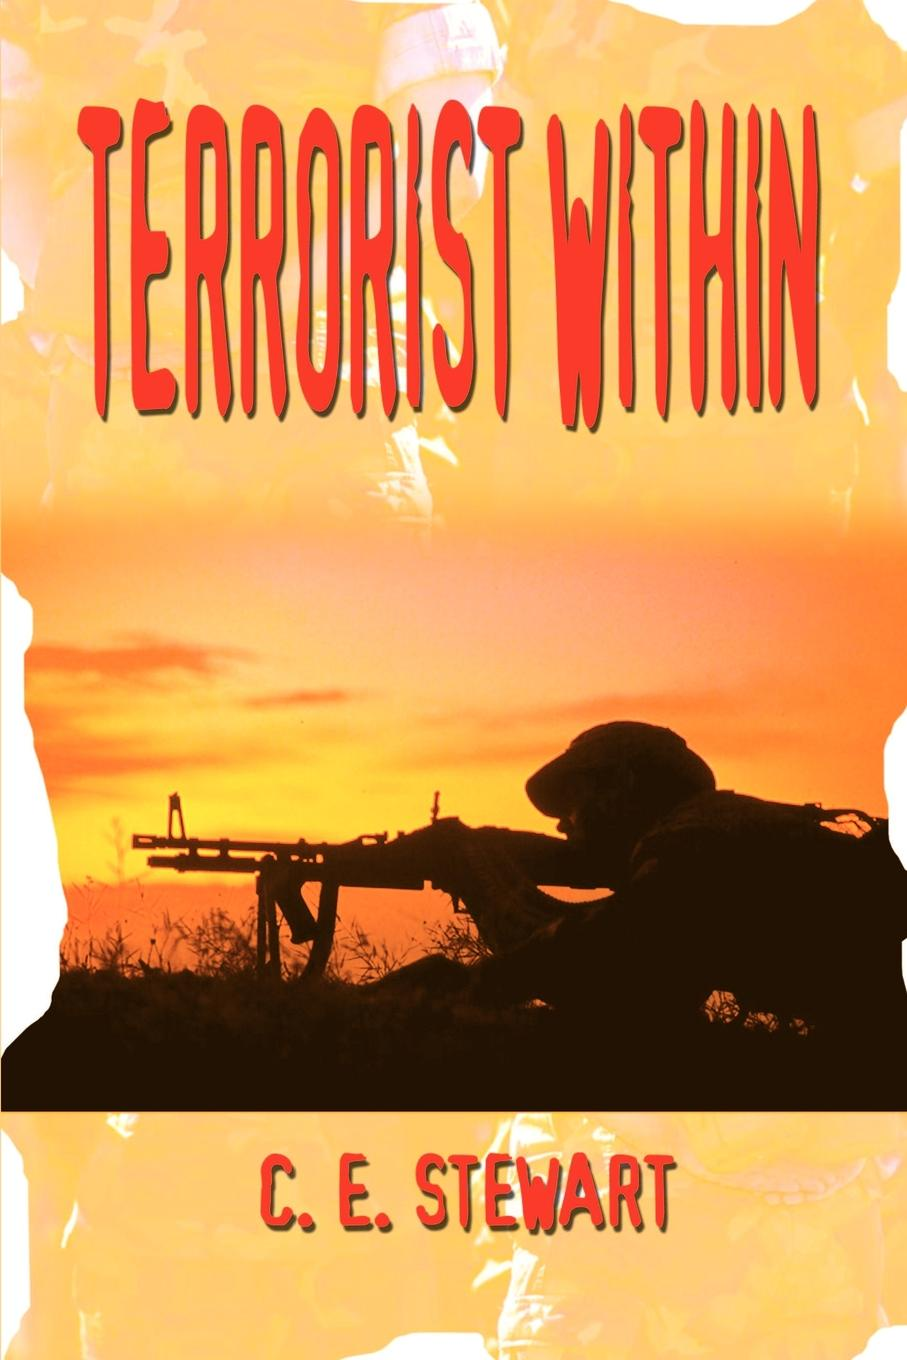 C. E. Stewart Terrorist Within terrorist hunter